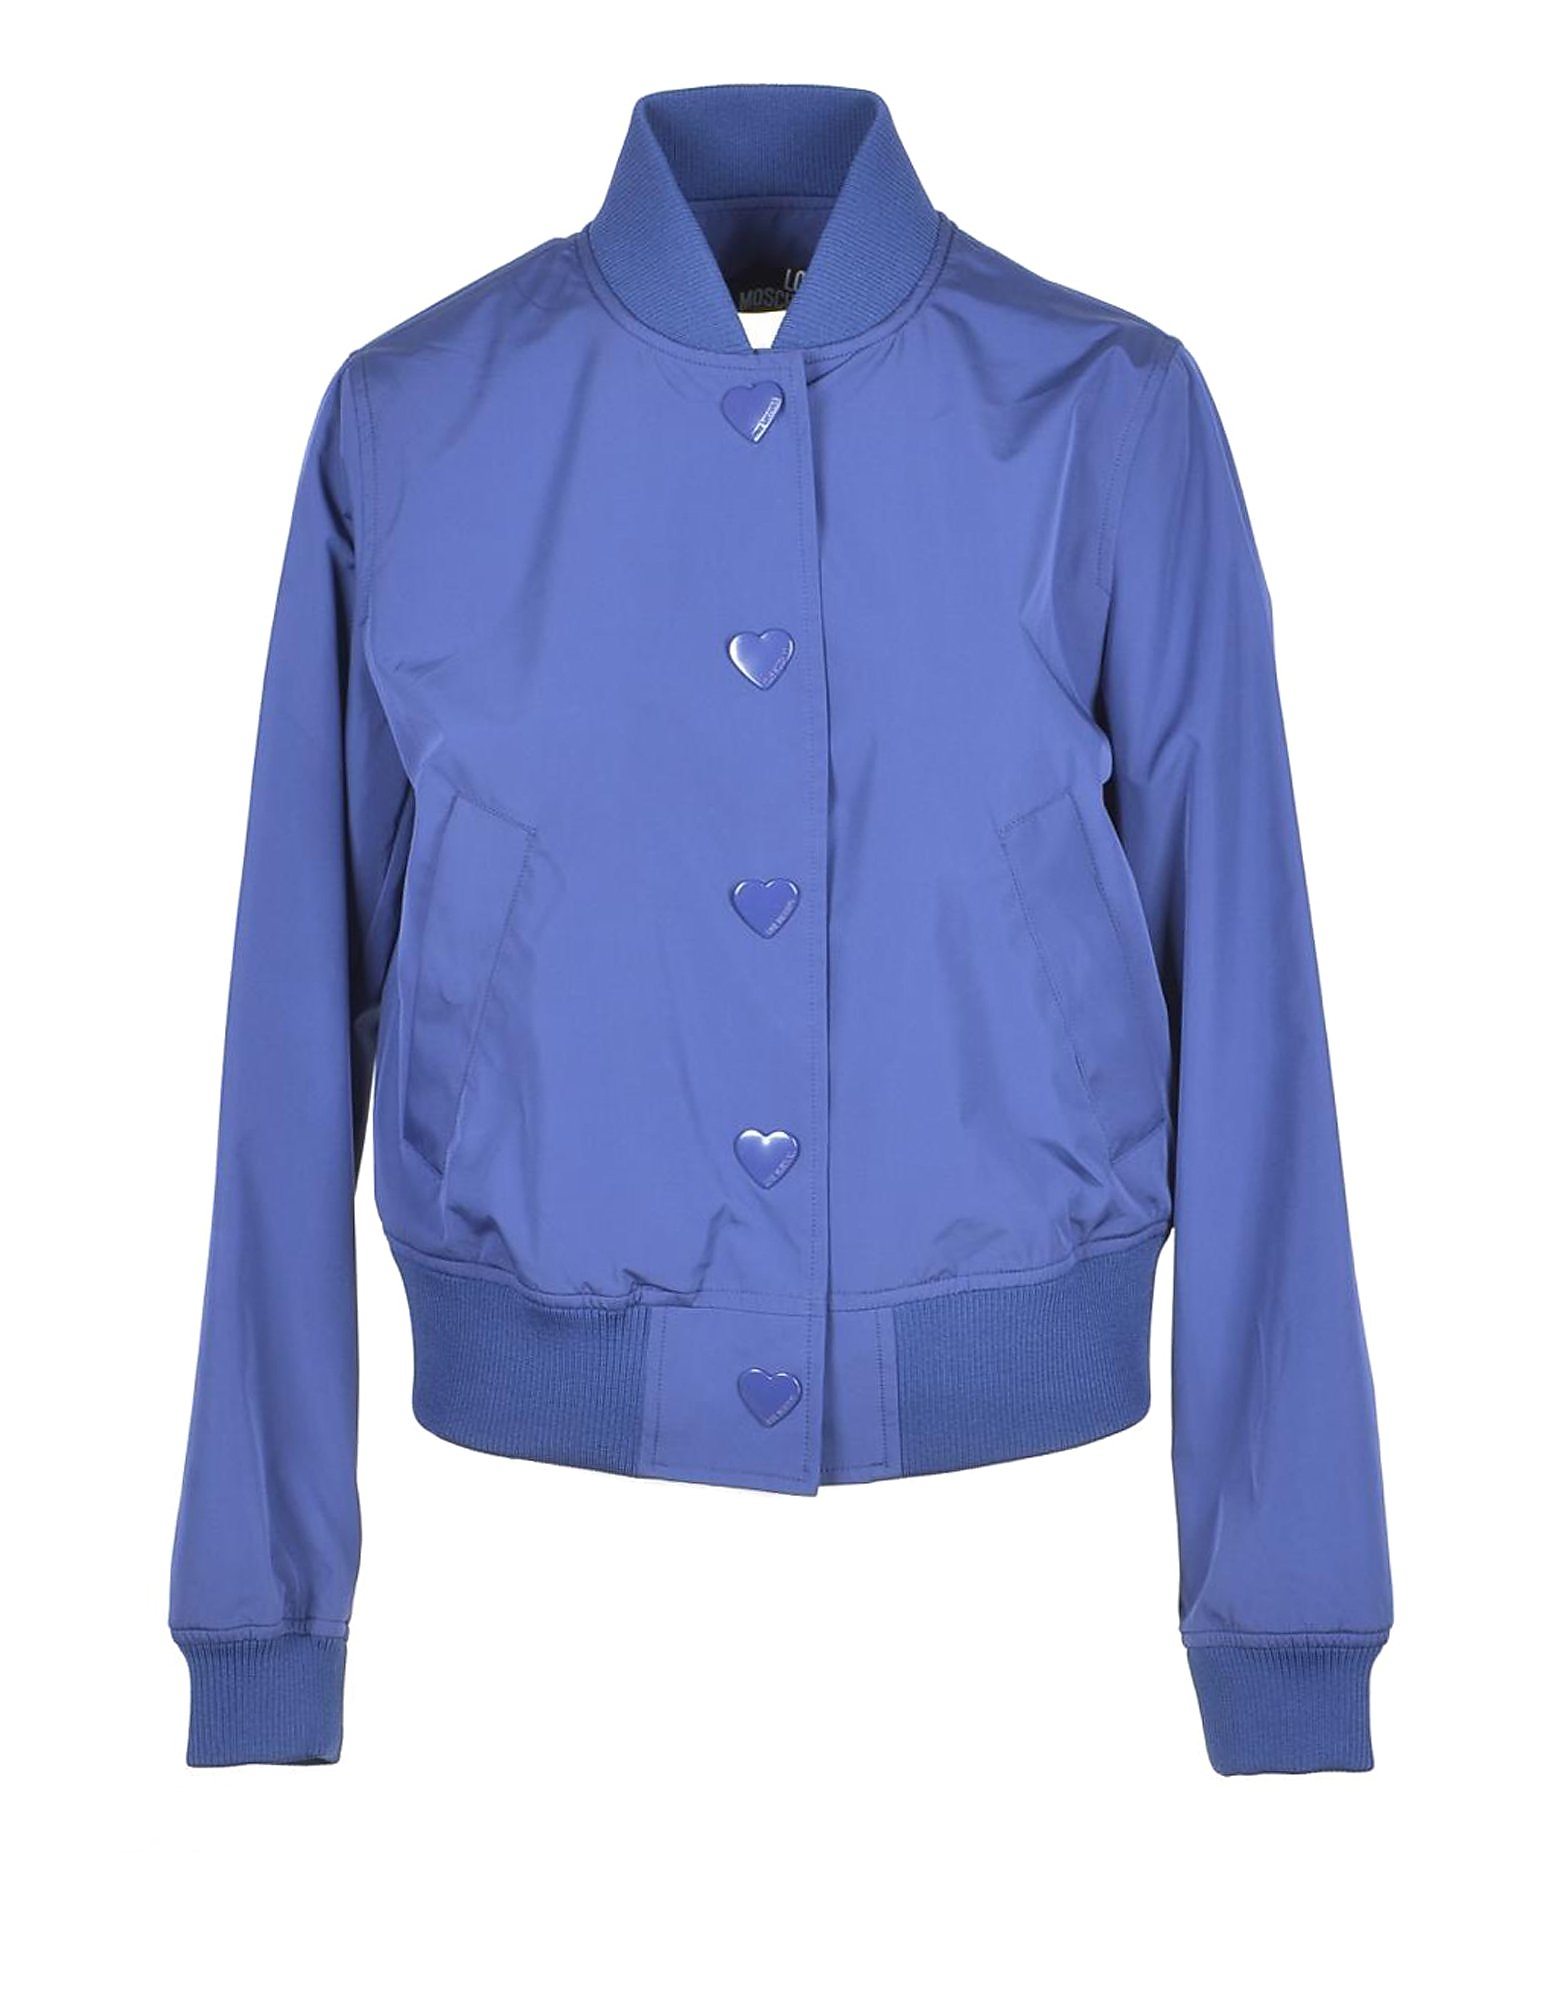 Love Moschino Designer Coats & Jackets, Women's Blue Bomber Jacket